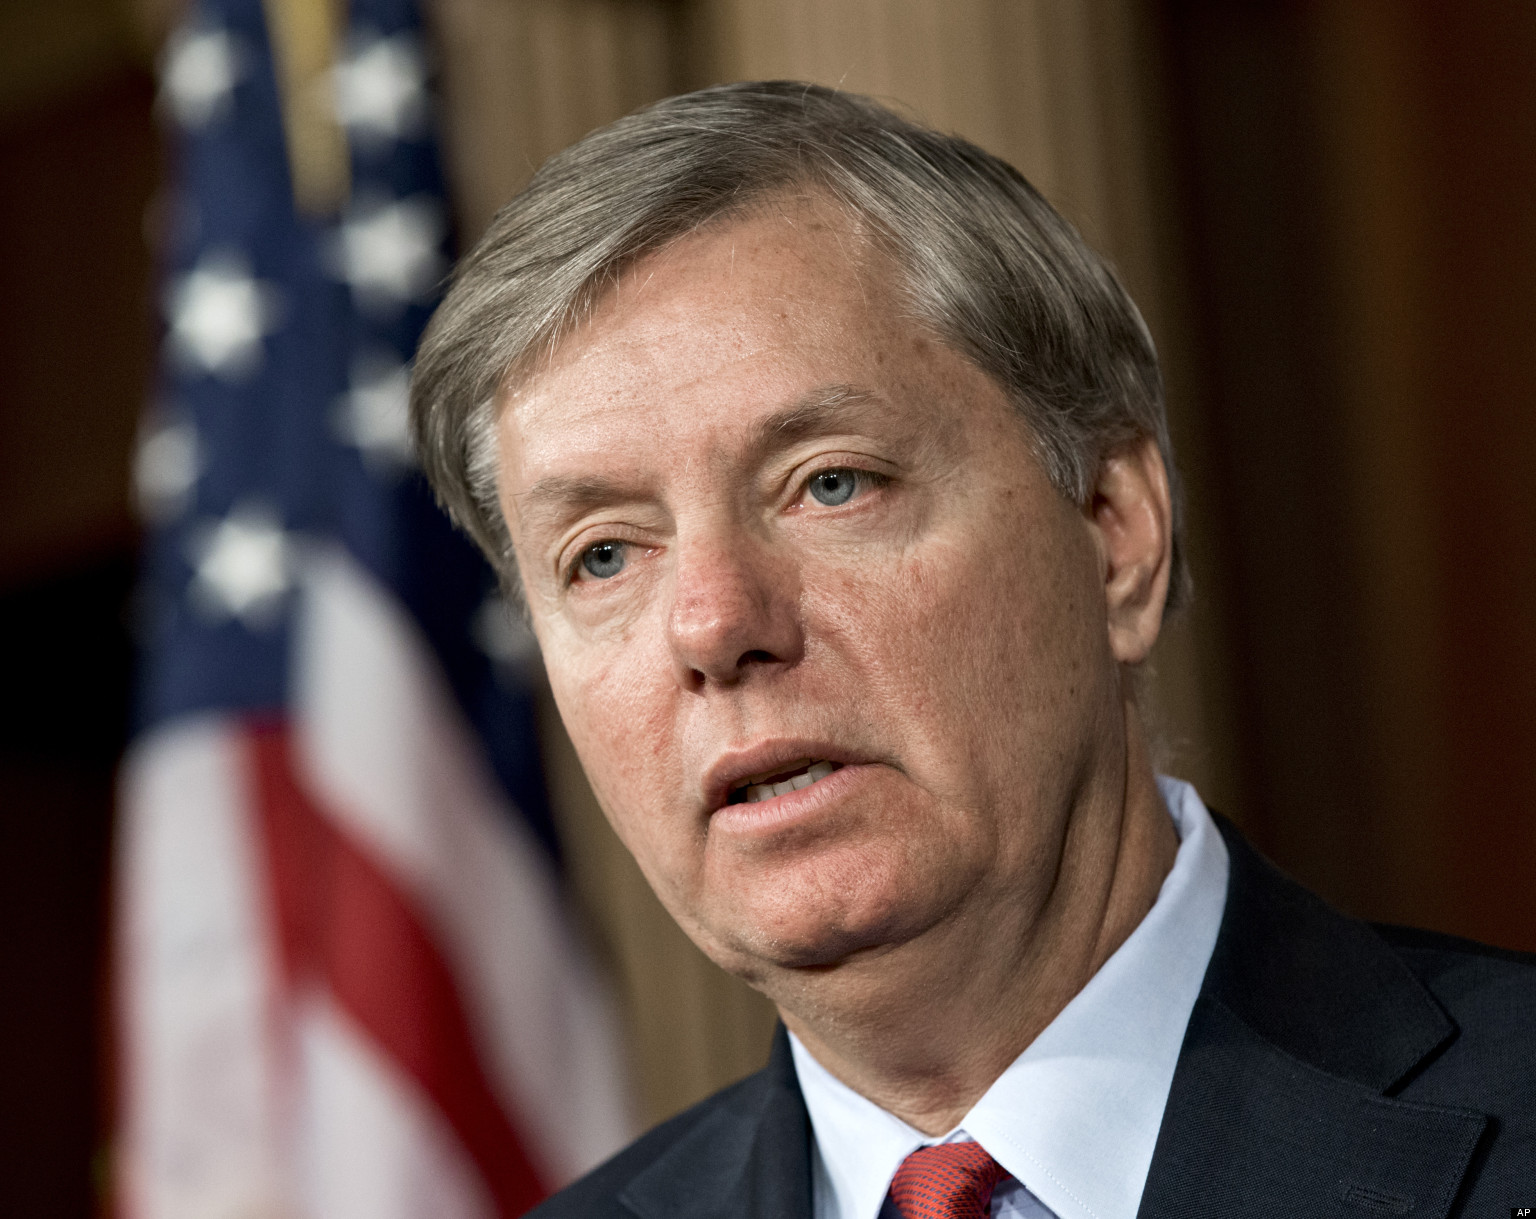 https://i2.wp.com/i.huffpost.com/gen/964479/thumbs/o-LINDSEY-GRAHAM-IMMIGRATION-facebook.jpg